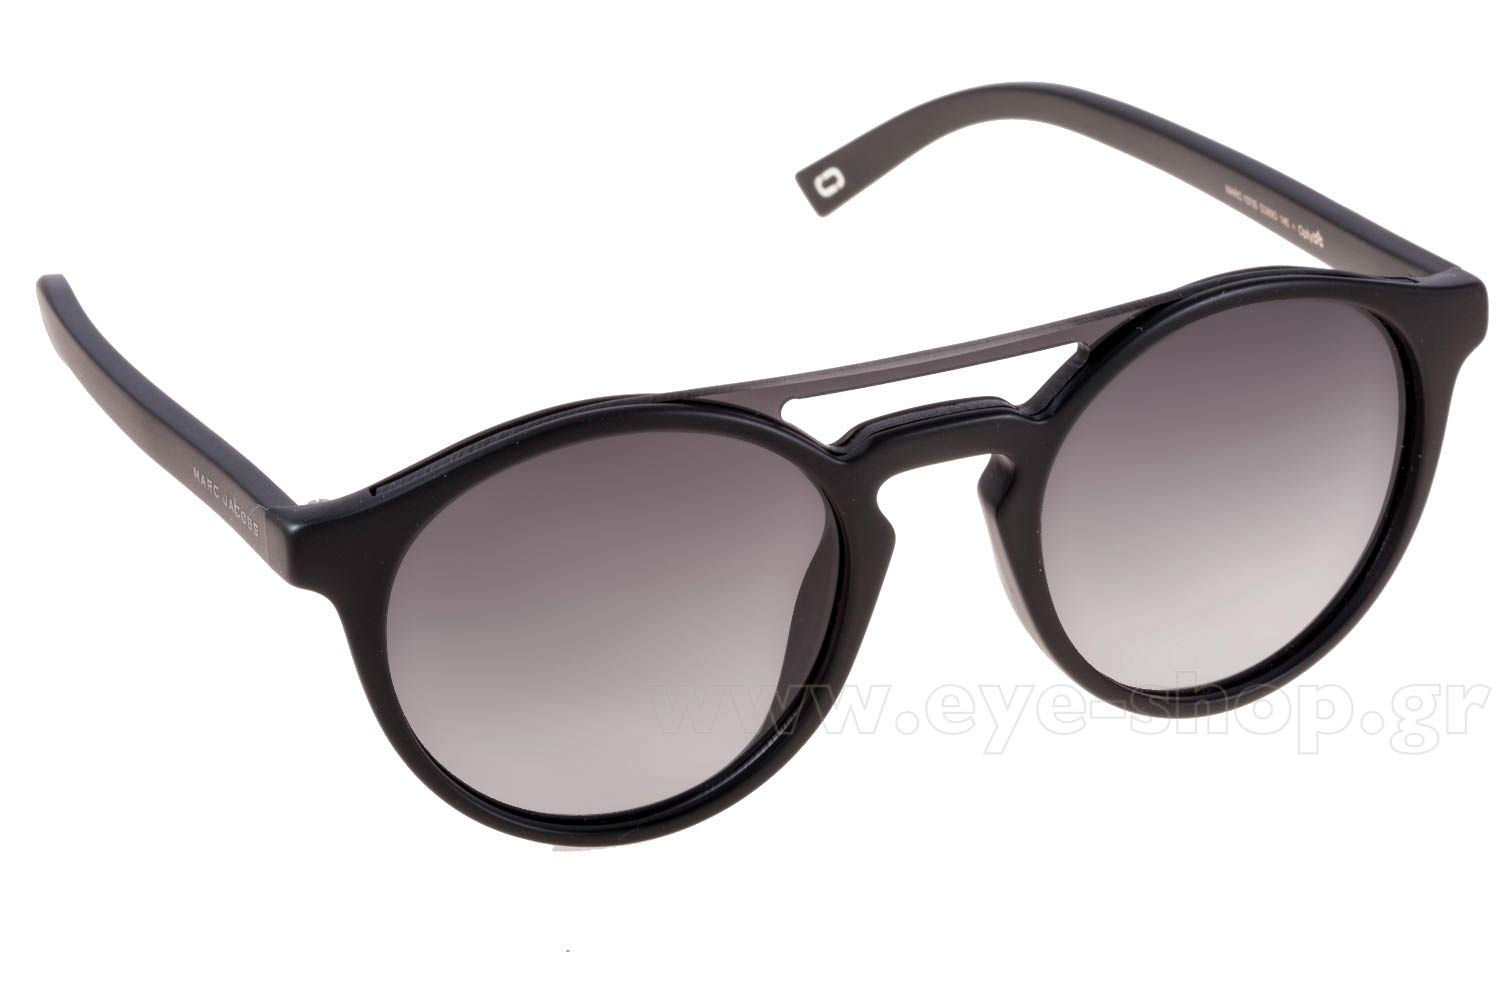 b6839141a680 Round Double bridge , color matte black plastic , lenses gray gradient  organic plastic. Enlarge Colors In Stock. Add to Cart. Sunglasses Marc  Jacobs ...